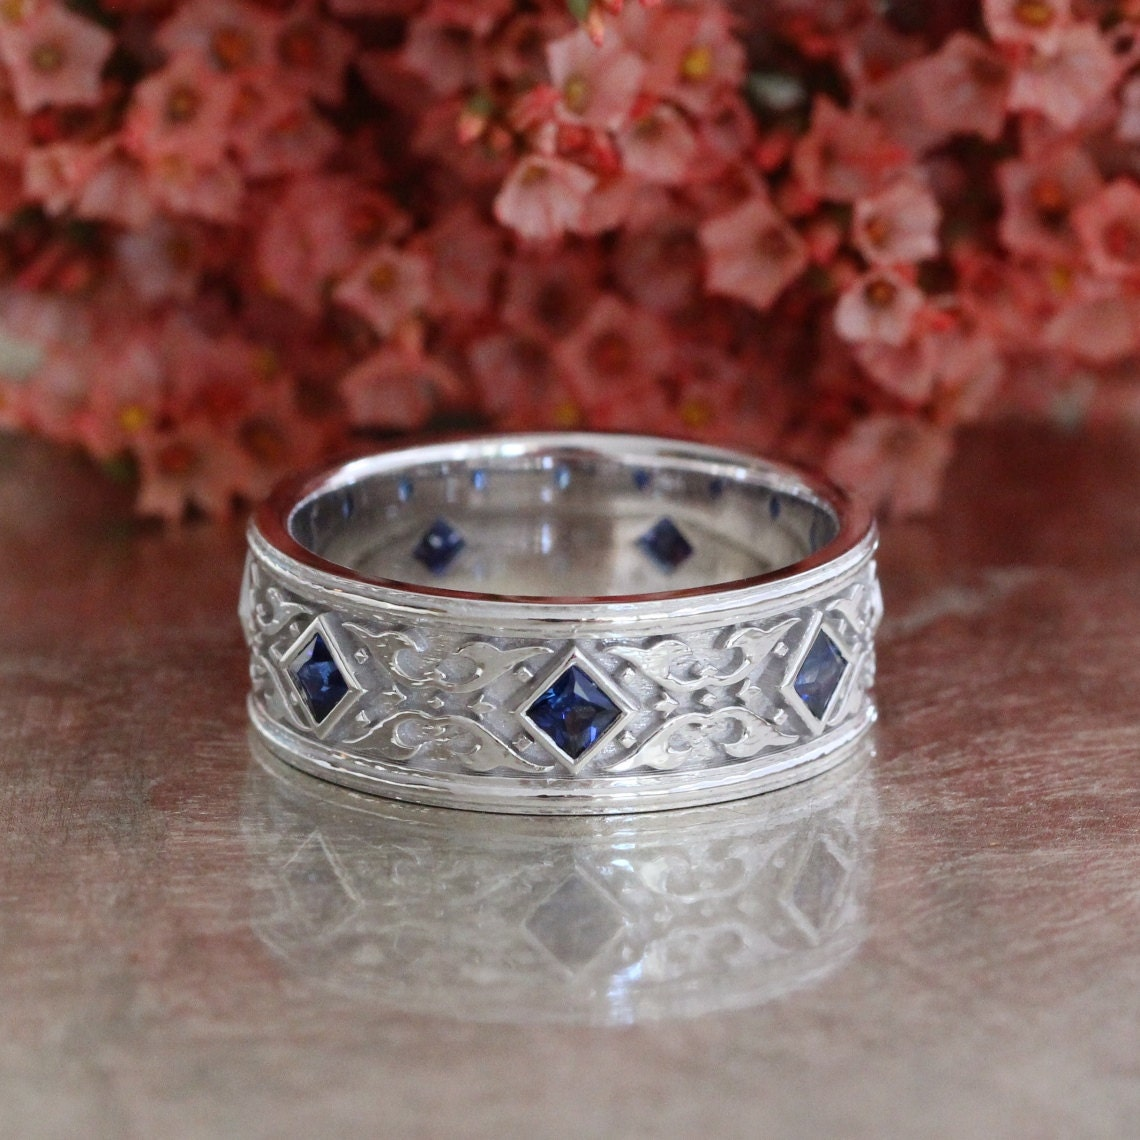 Princess Cut Engagement Rings  The Knot